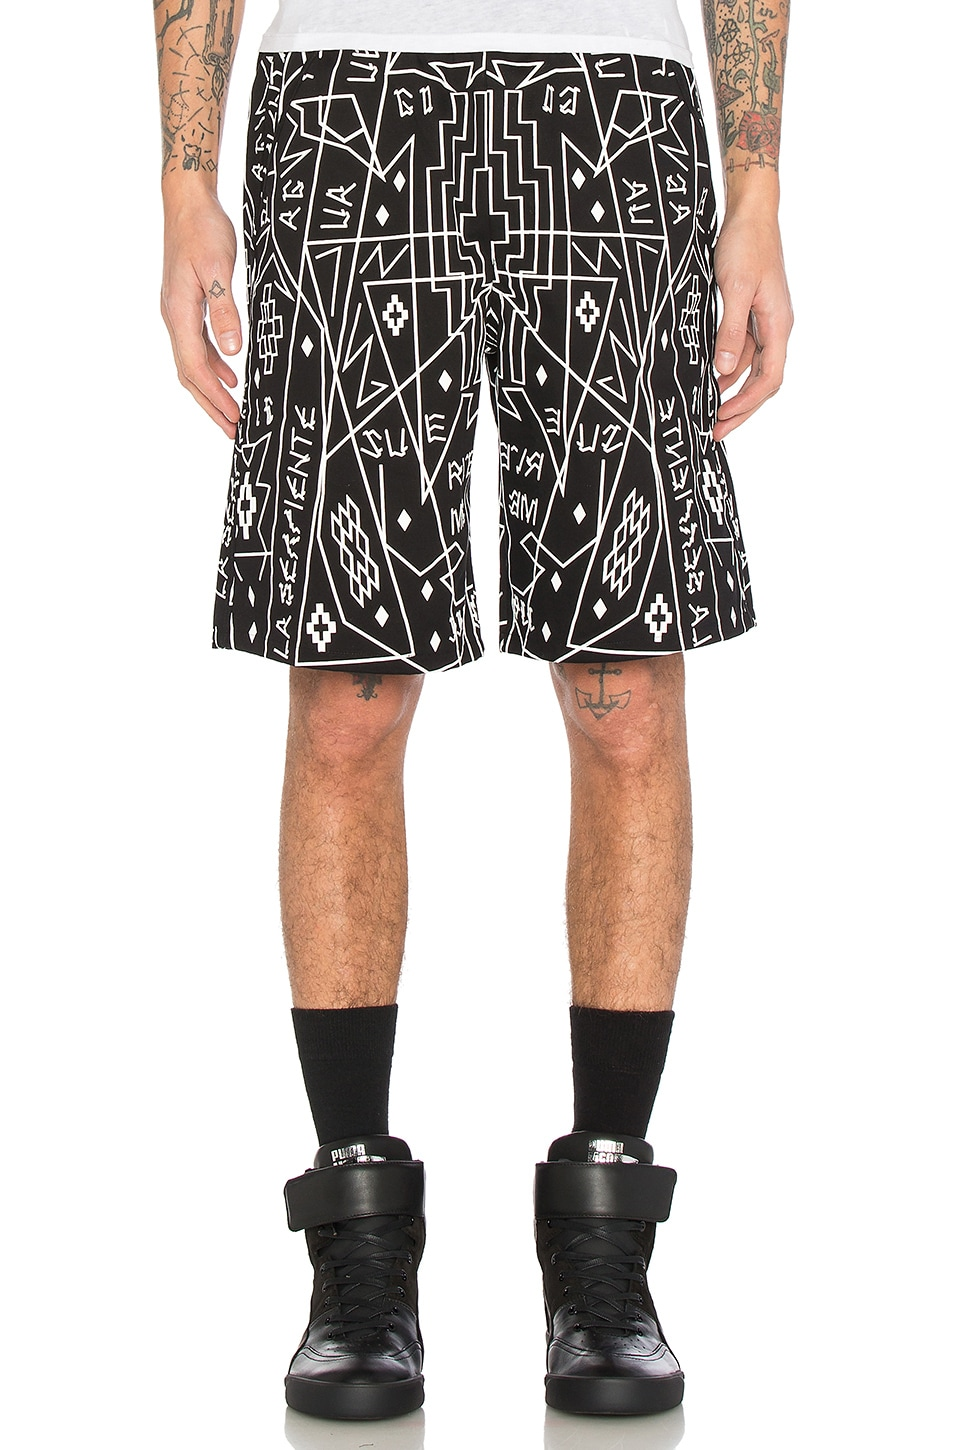 Salomon Shorts by Marcelo Burlon